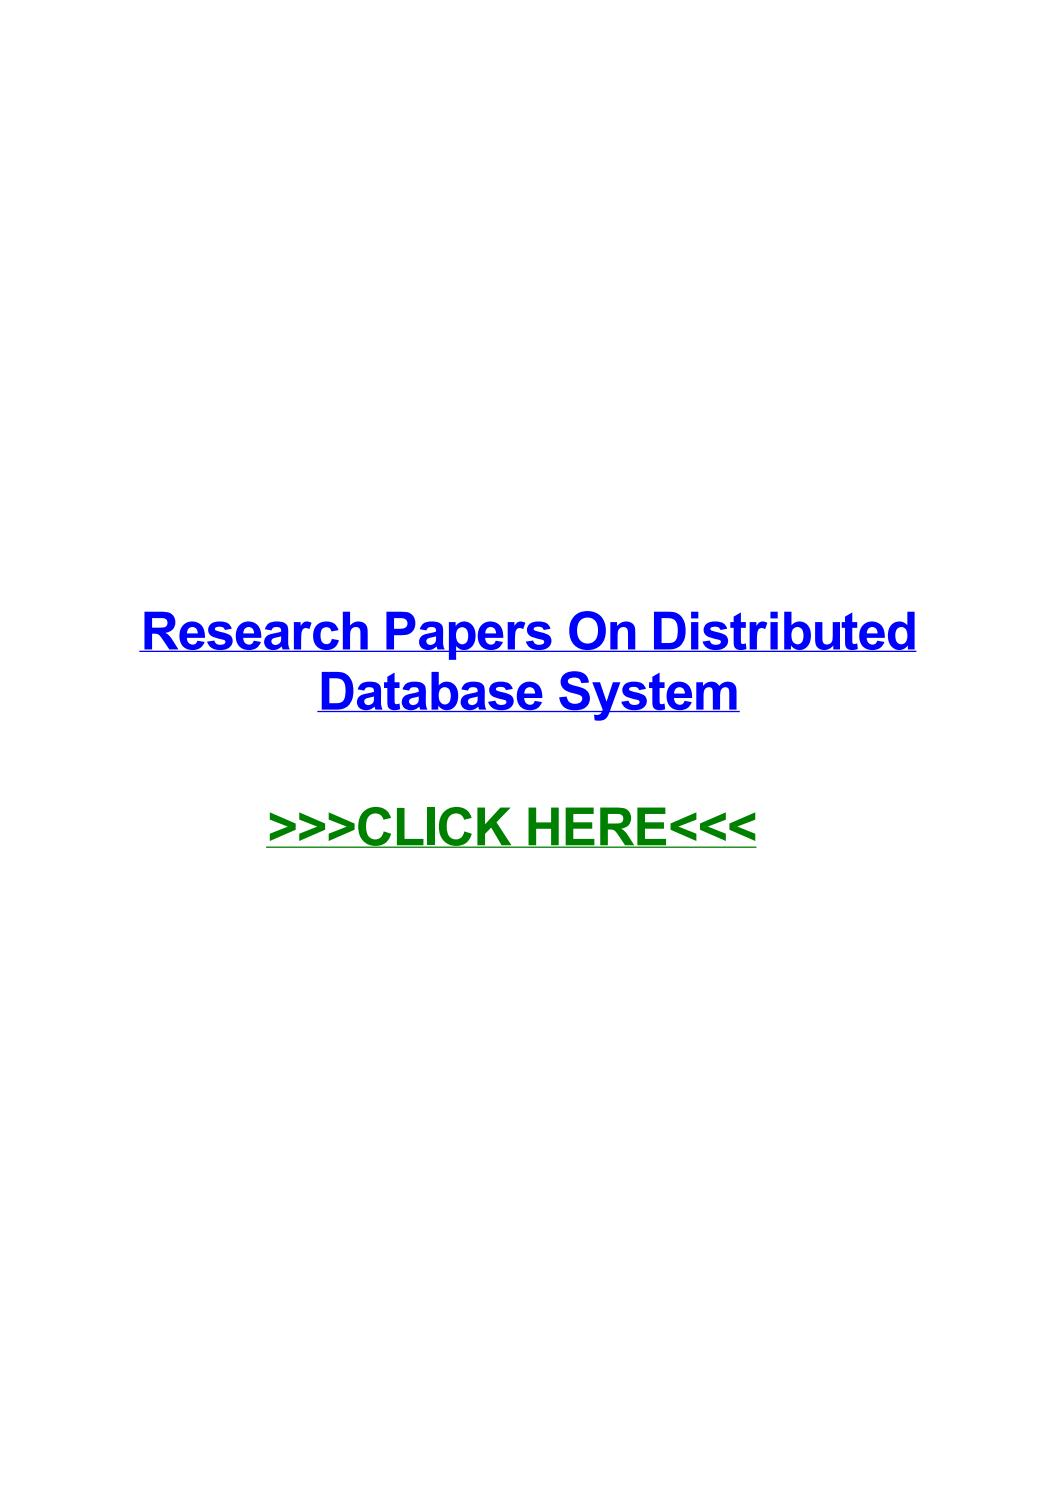 002 Distributed Database Researchs Page 1 Unusual Research Papers Pdf Full